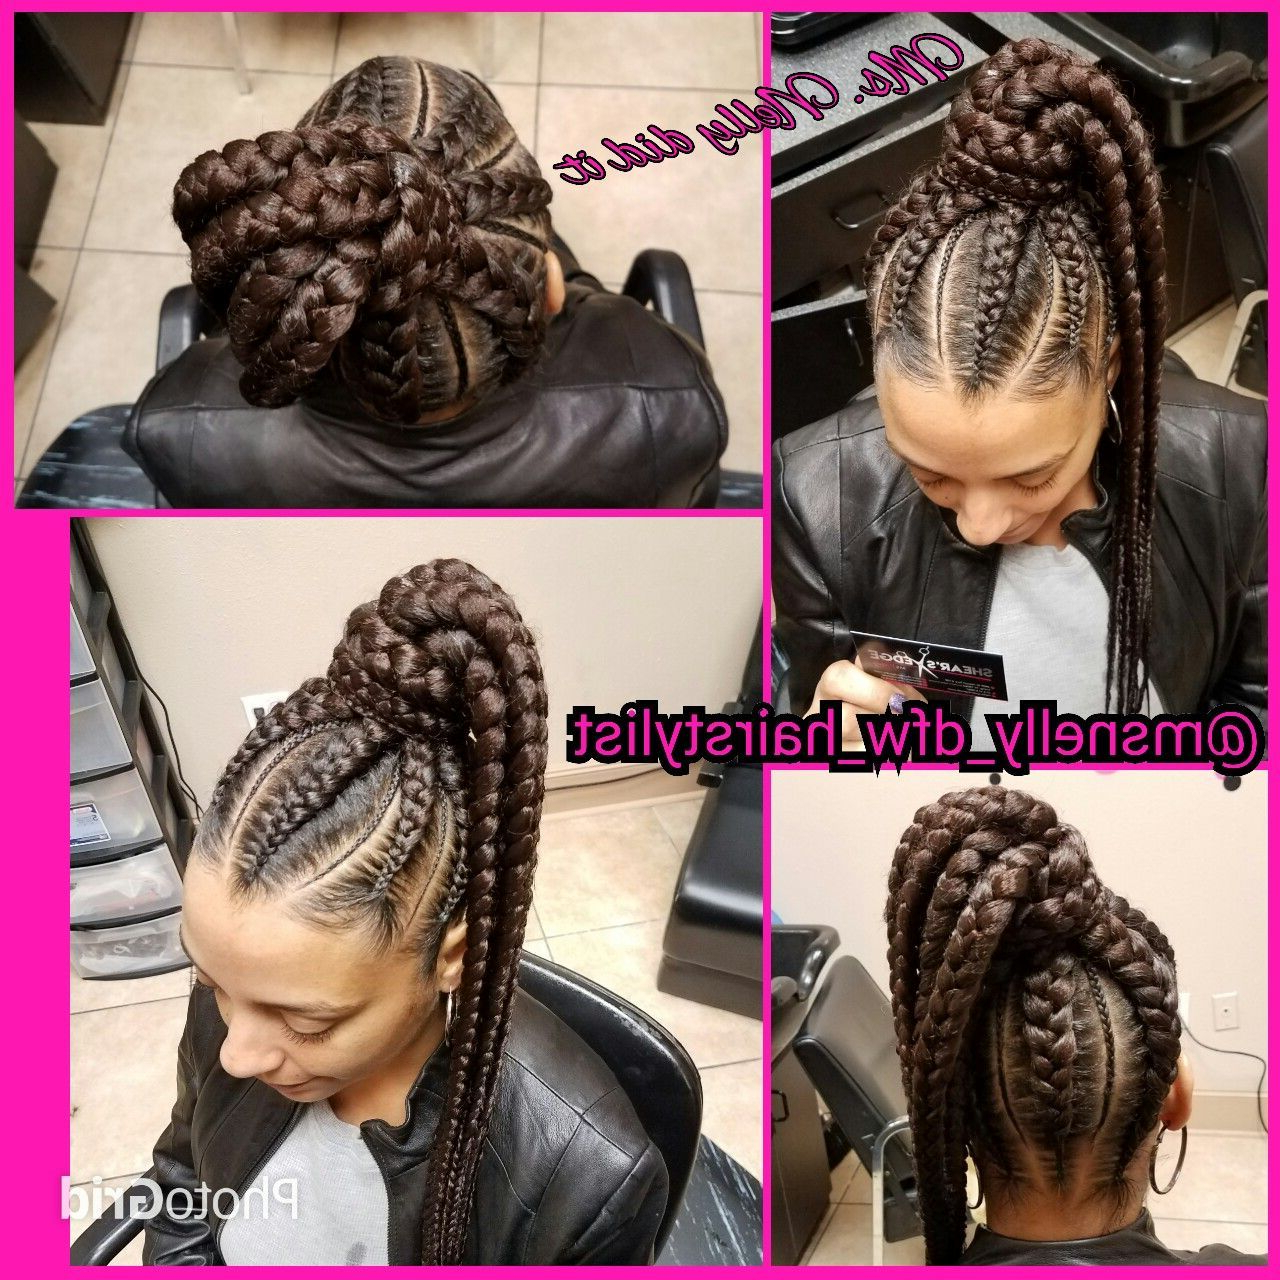 High Ponytail Feeder Braids, Small Braids In Between Pertaining To Newest High Ponytail Braided Hairstyles (Gallery 2 of 20)